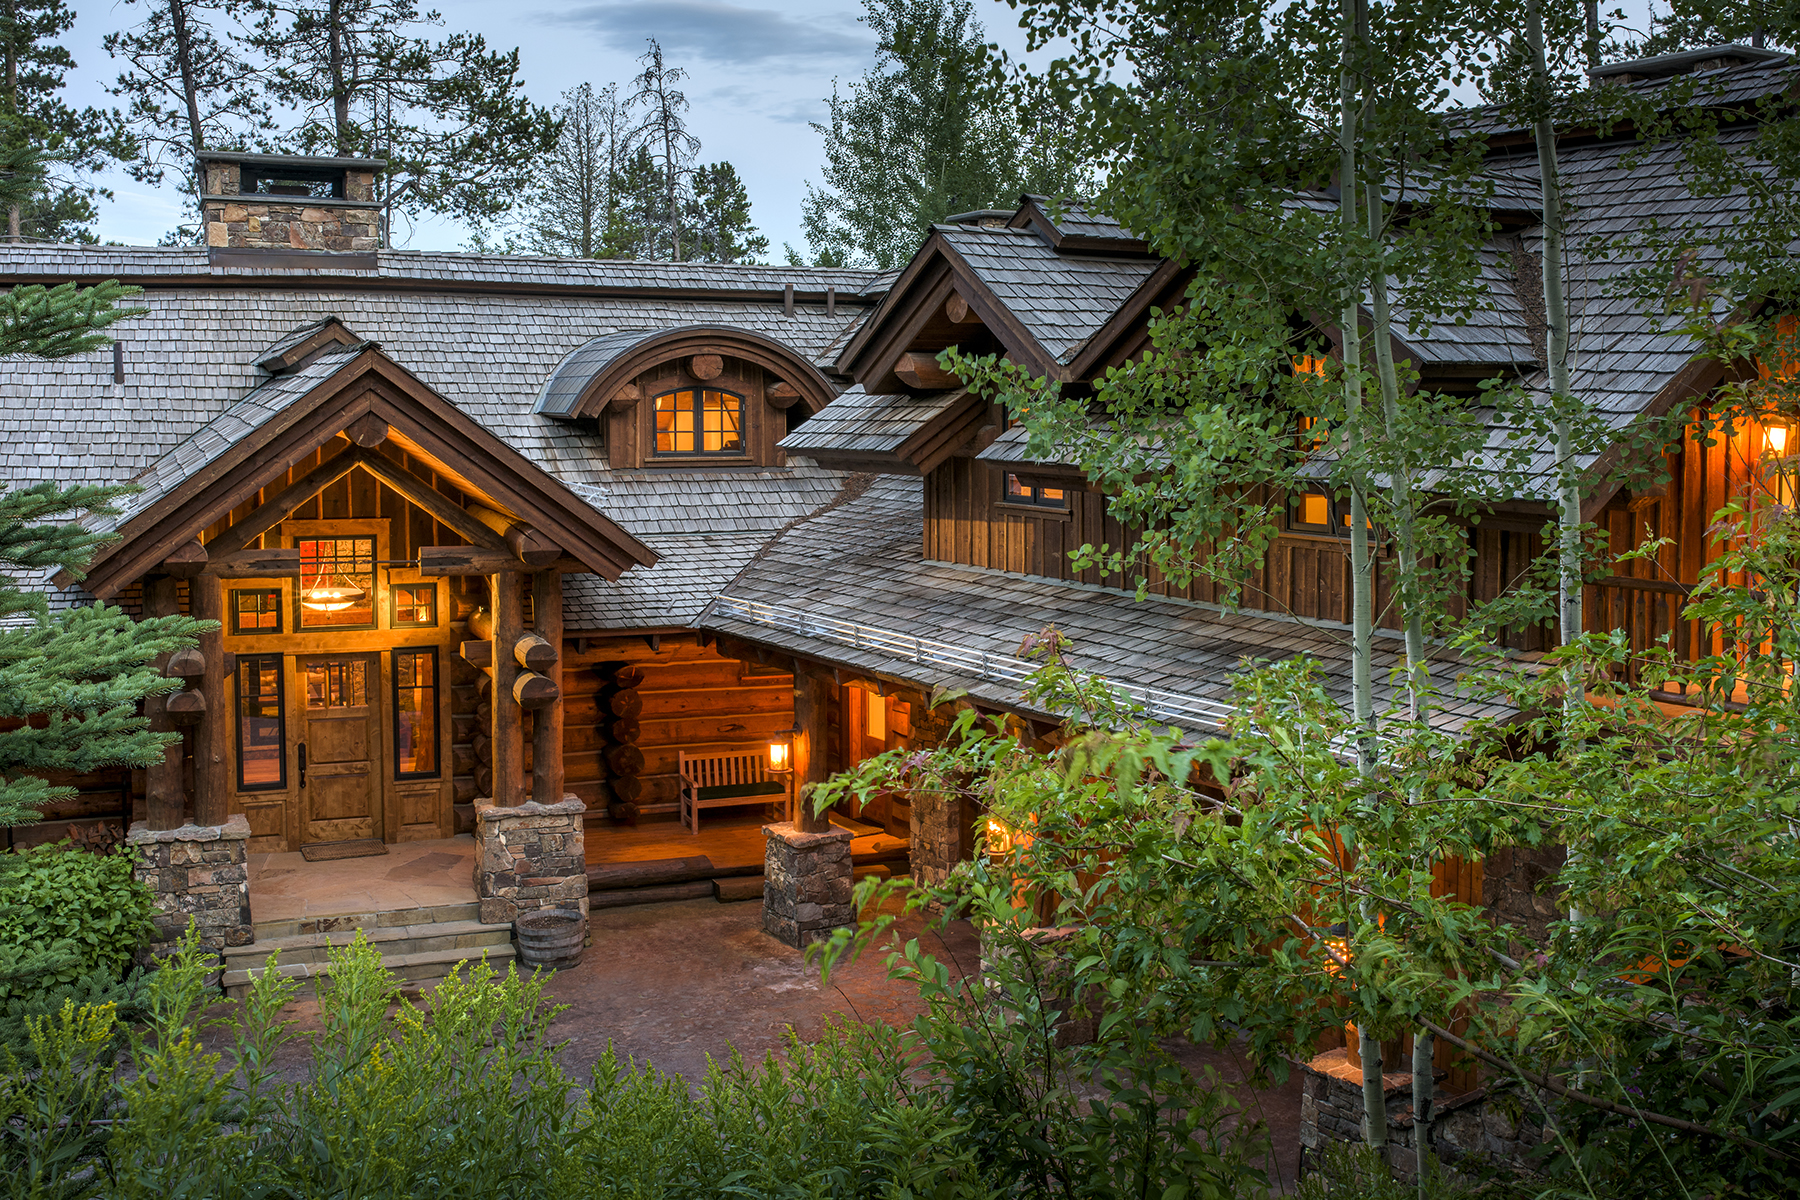 Casa Unifamiliar por un Venta en Mountain Ski Home 7875 N Granite Ridge RD, Teton Village, Wyoming, 83025 Jackson Hole, Estados Unidos